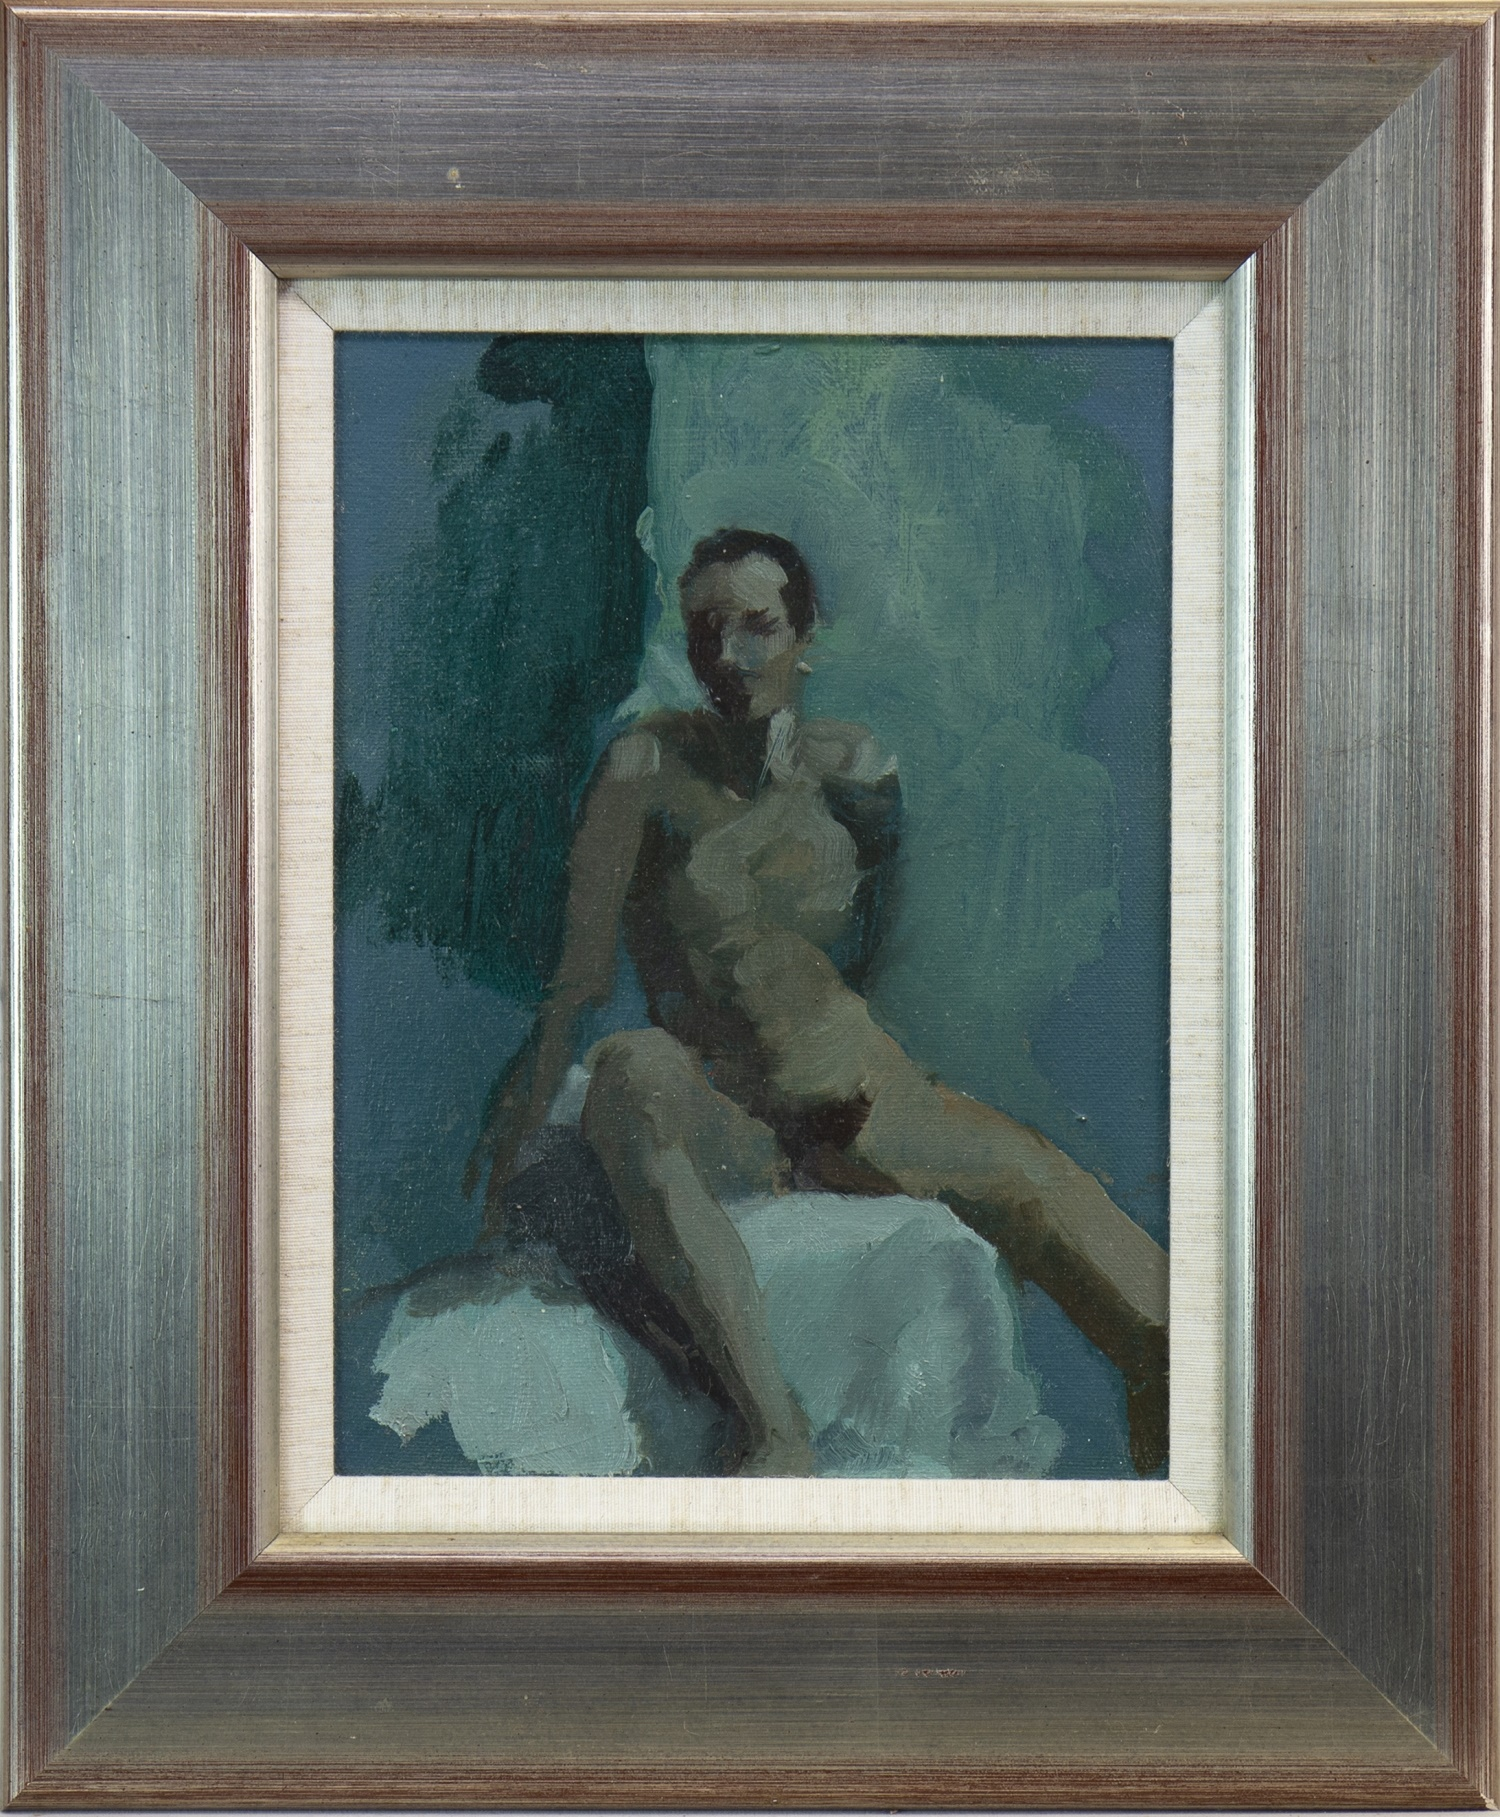 Lot 517 - NUDE STUDY IN BLUE, AN OIL